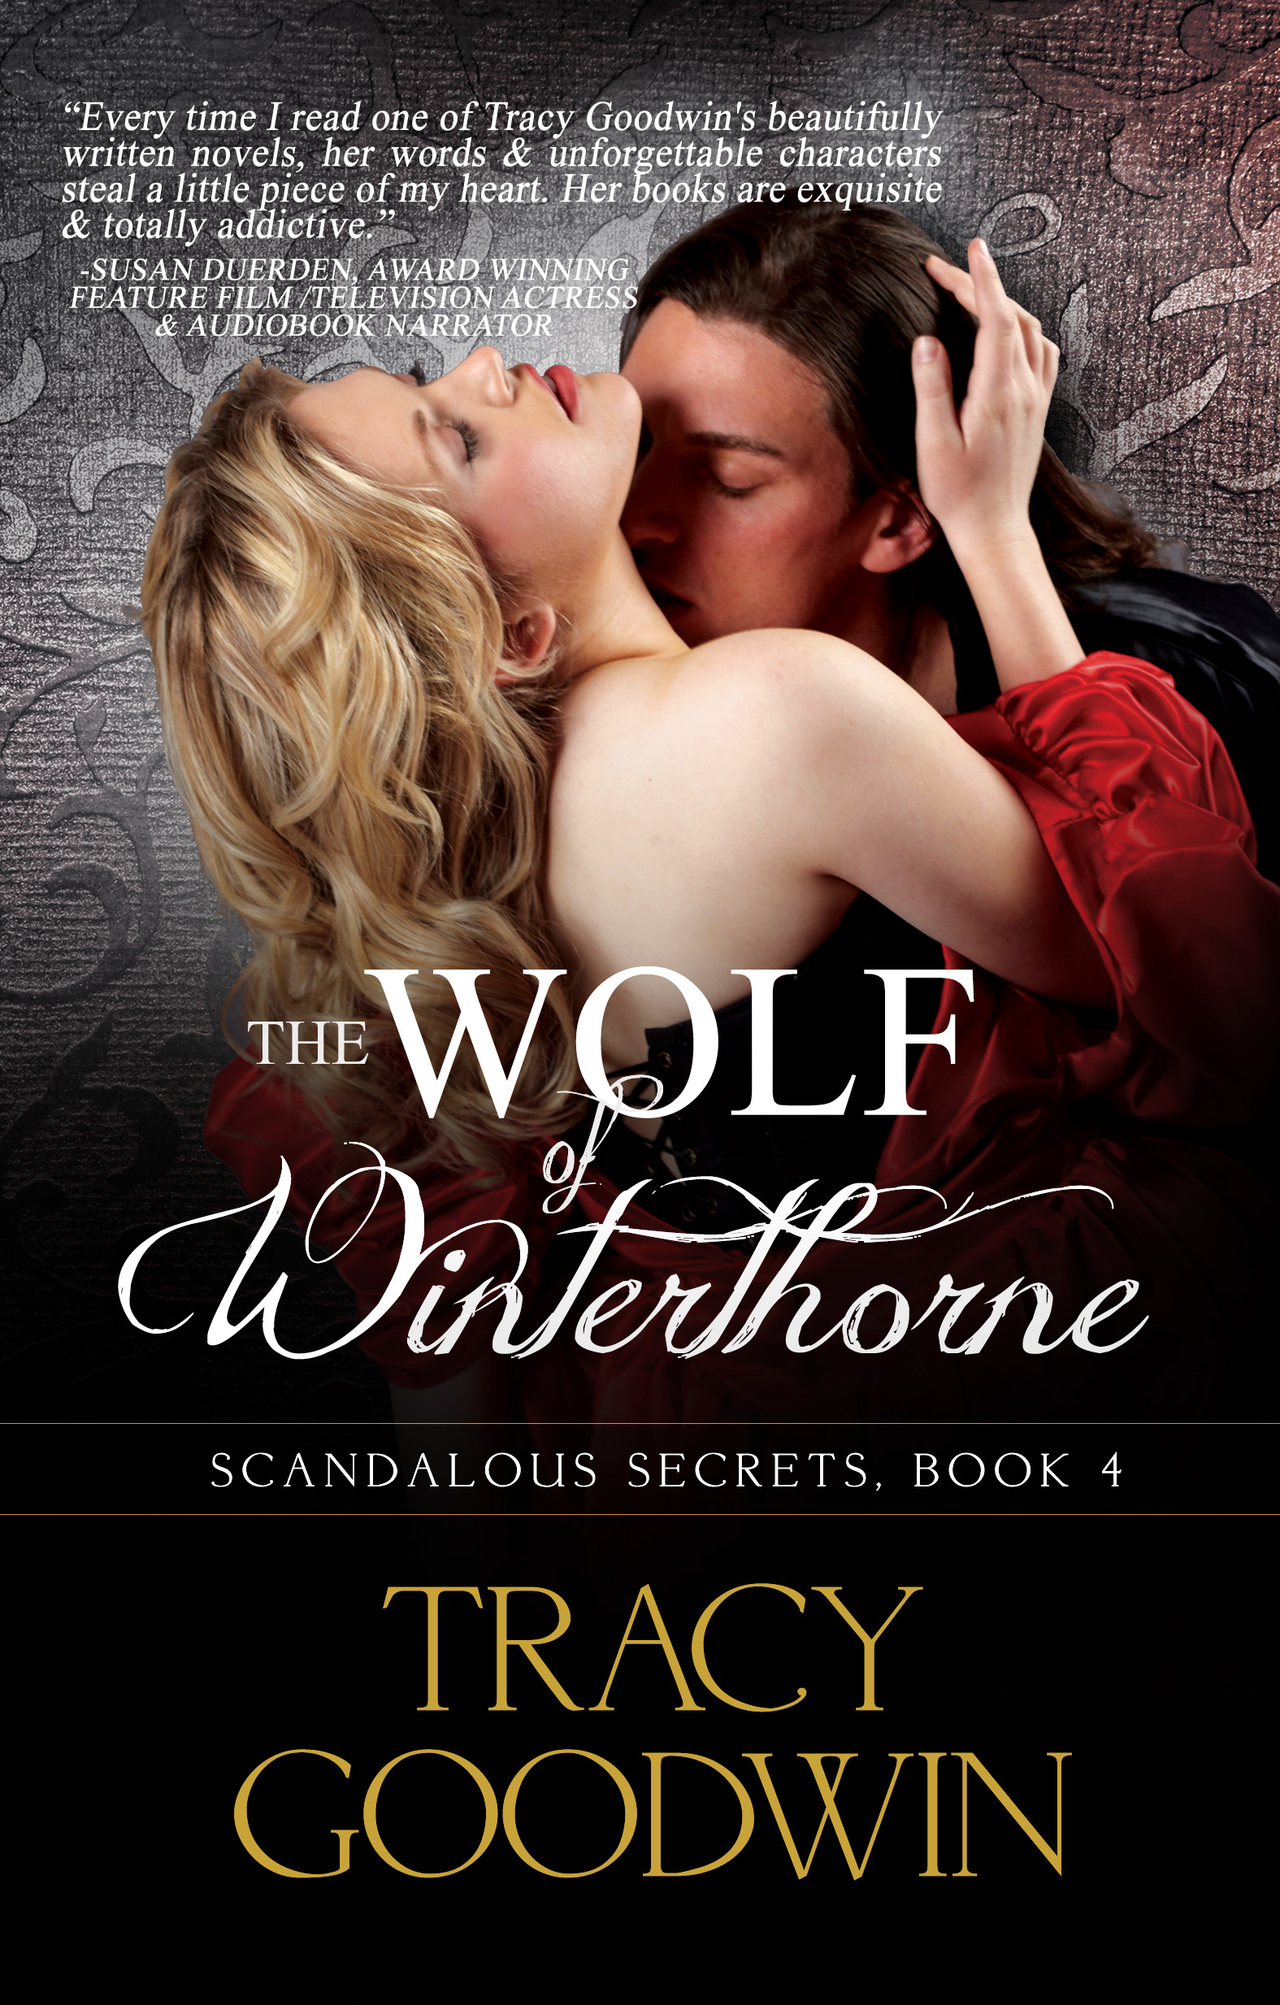 Goodwin.the wolf of winterthorne cover